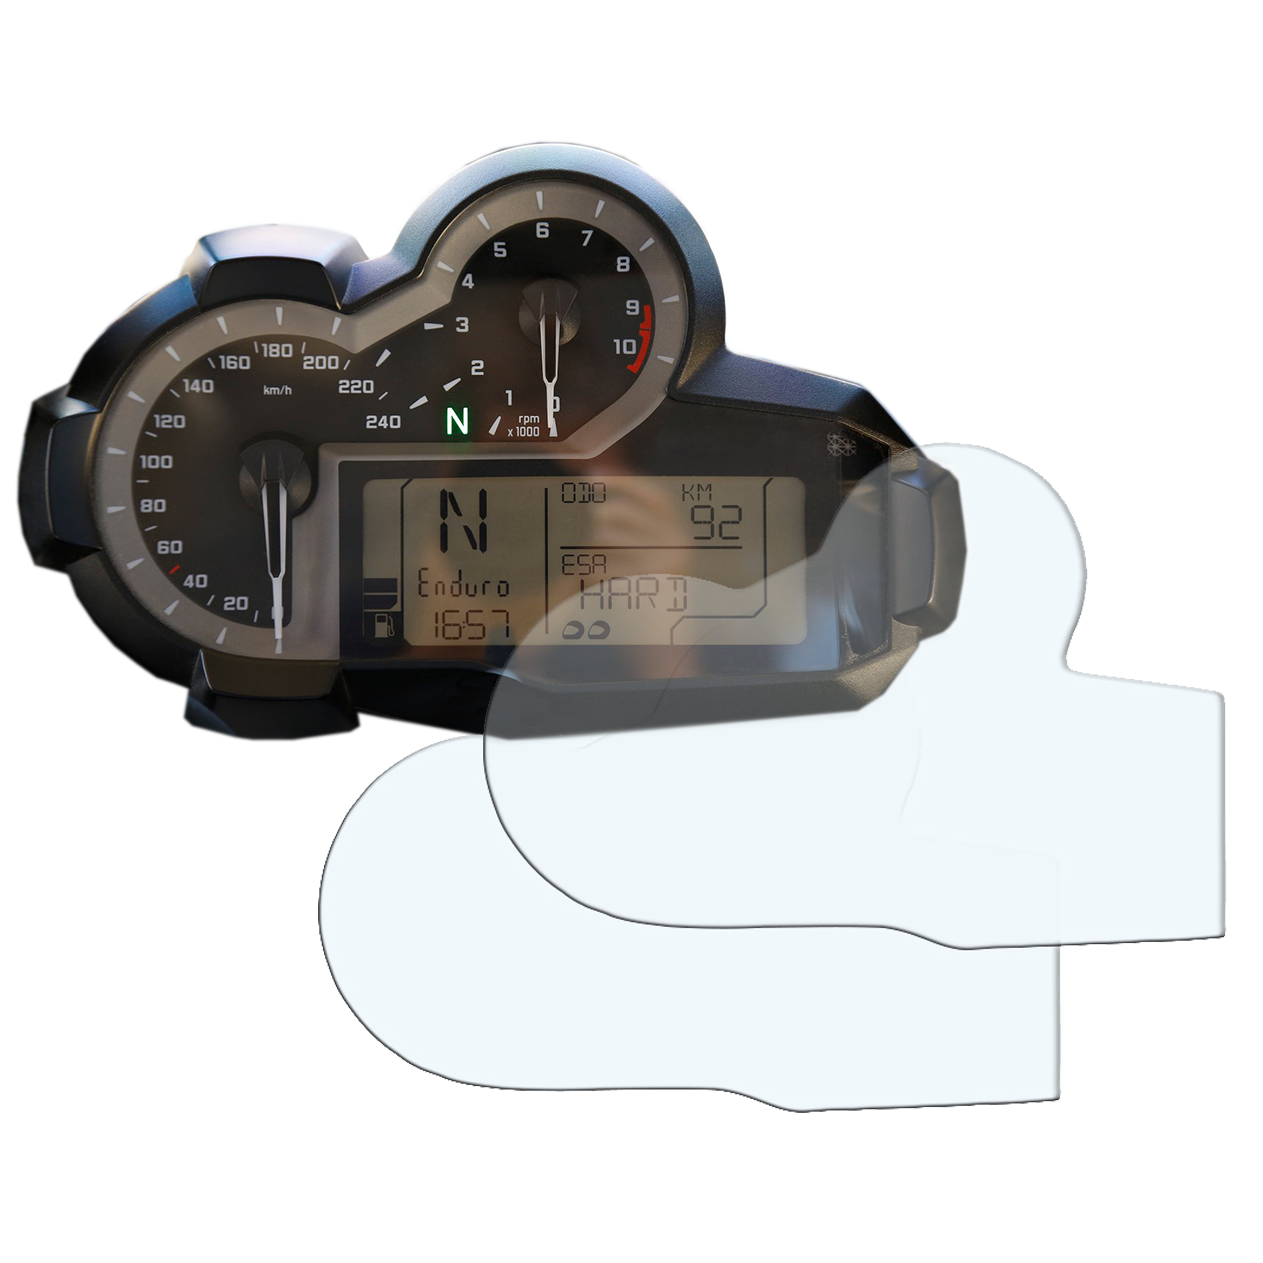 BMW R1200GS Screen Protector